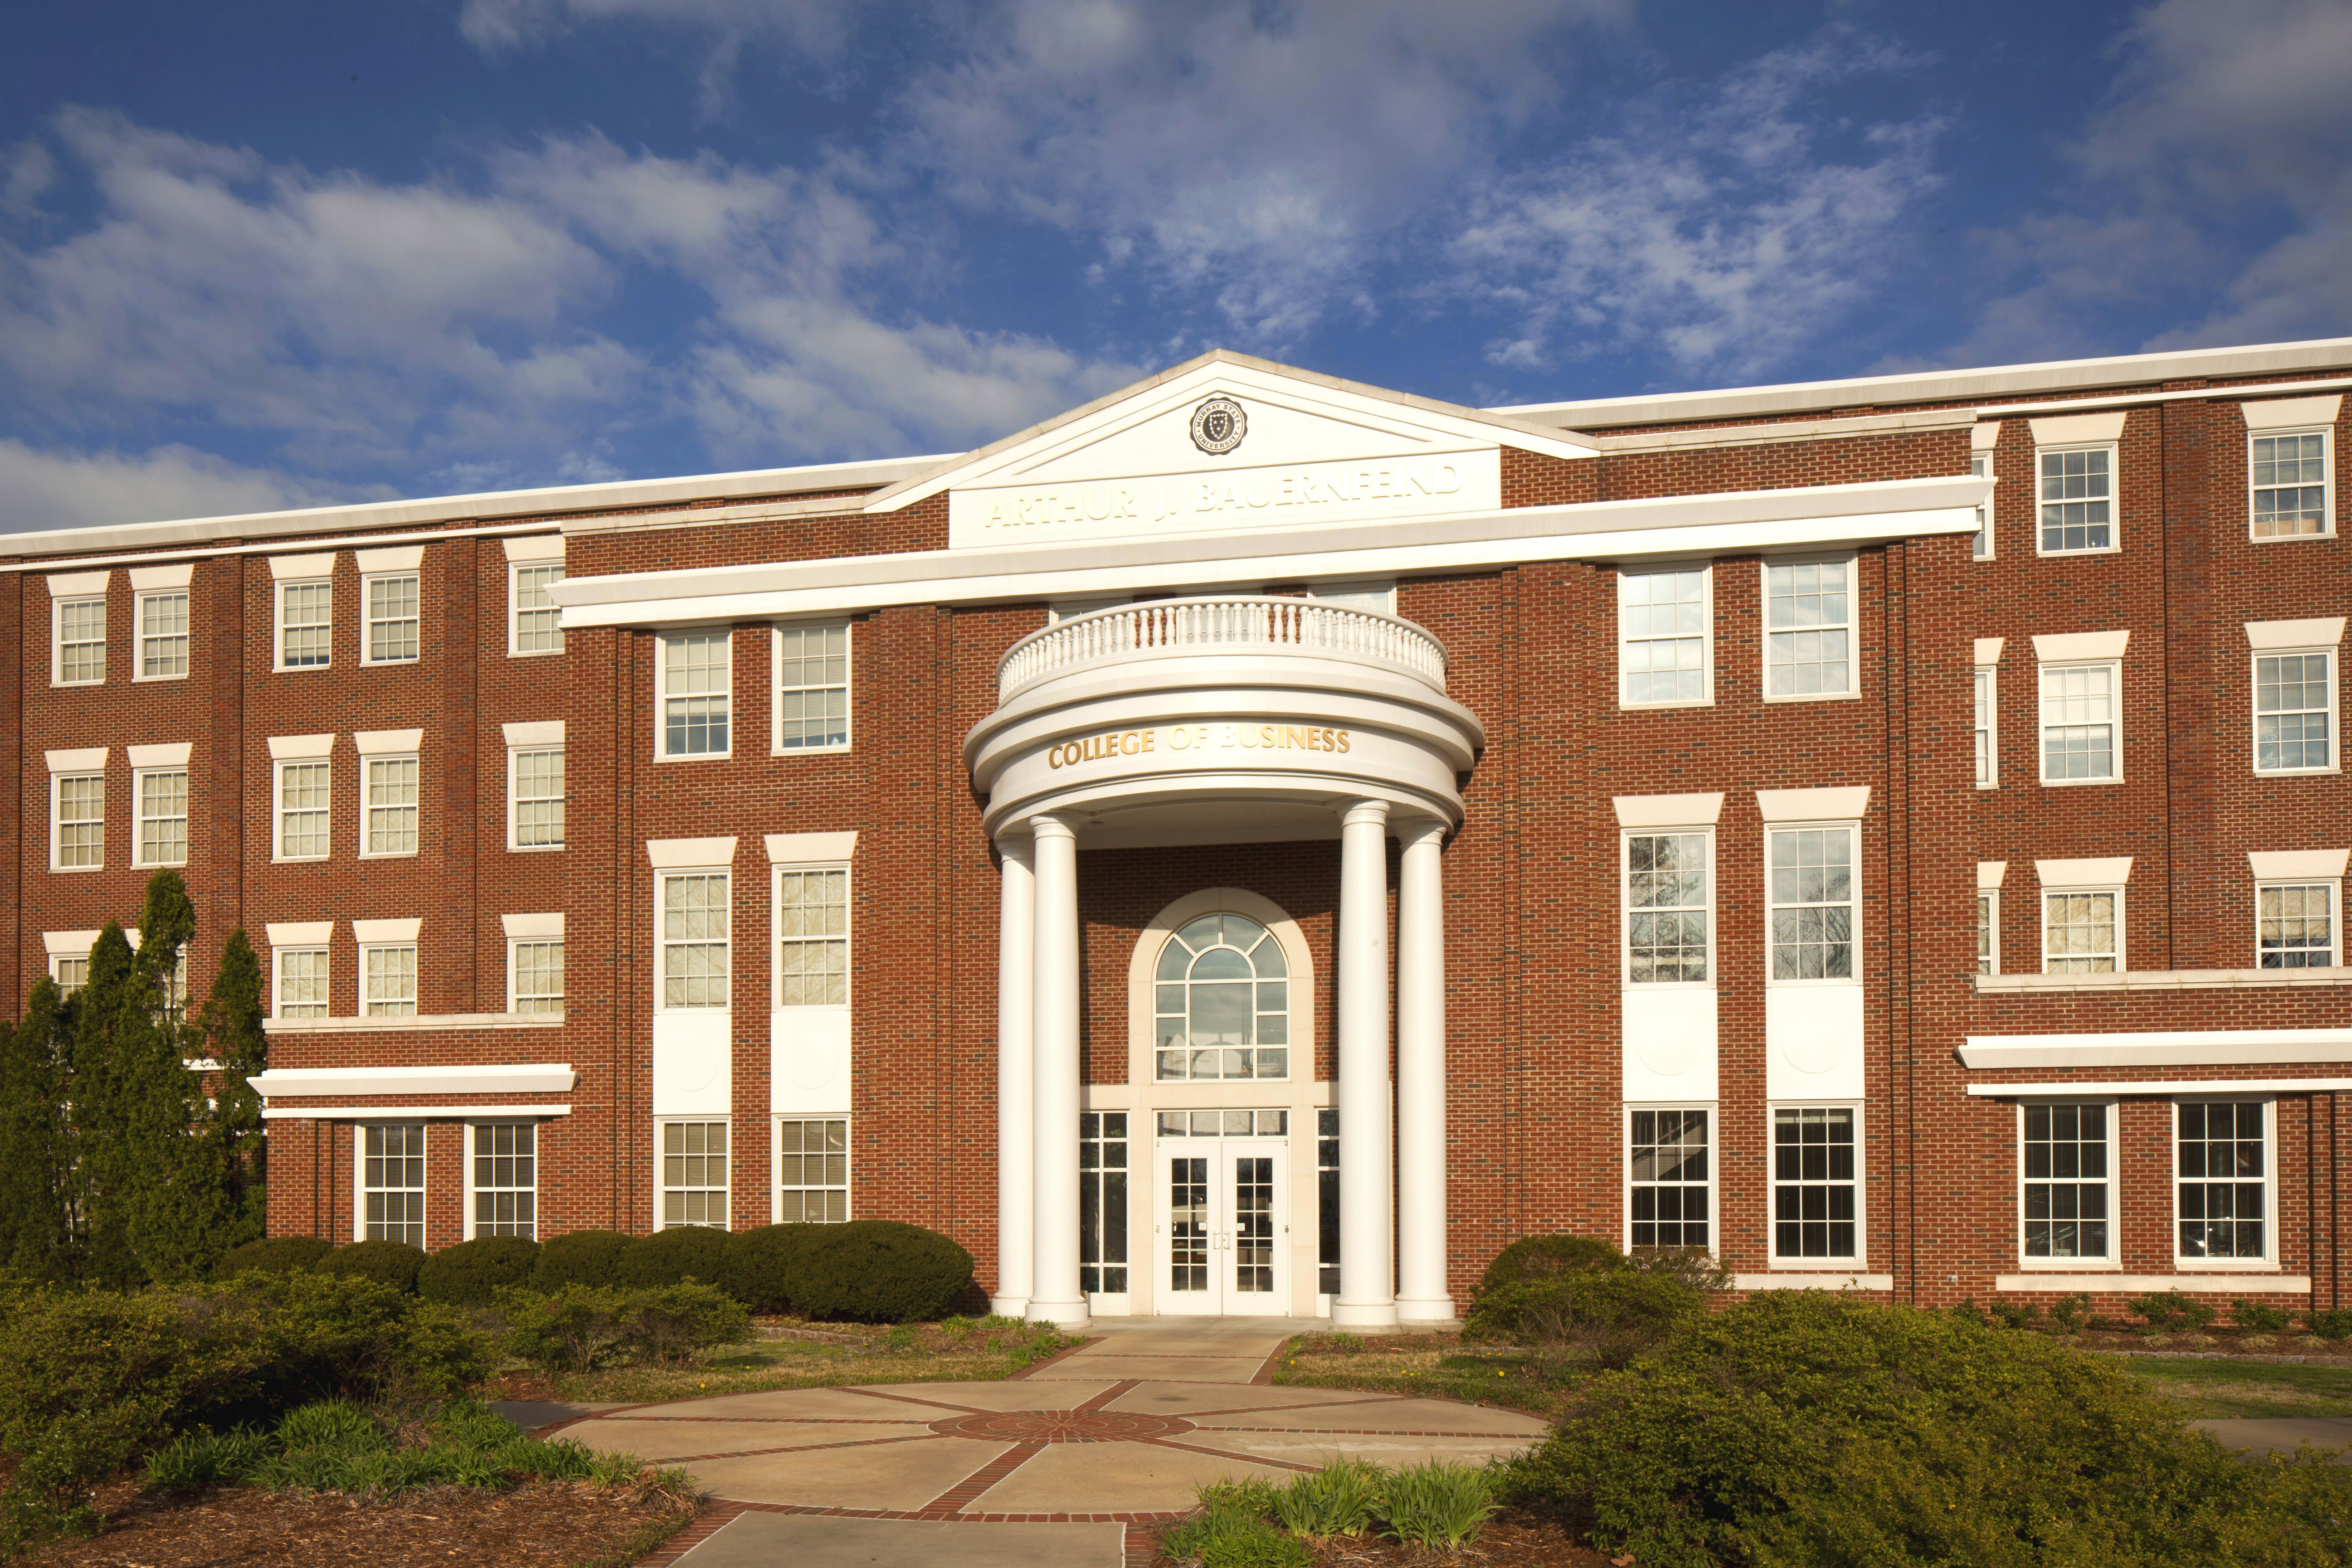 The College of Business at Murray State University